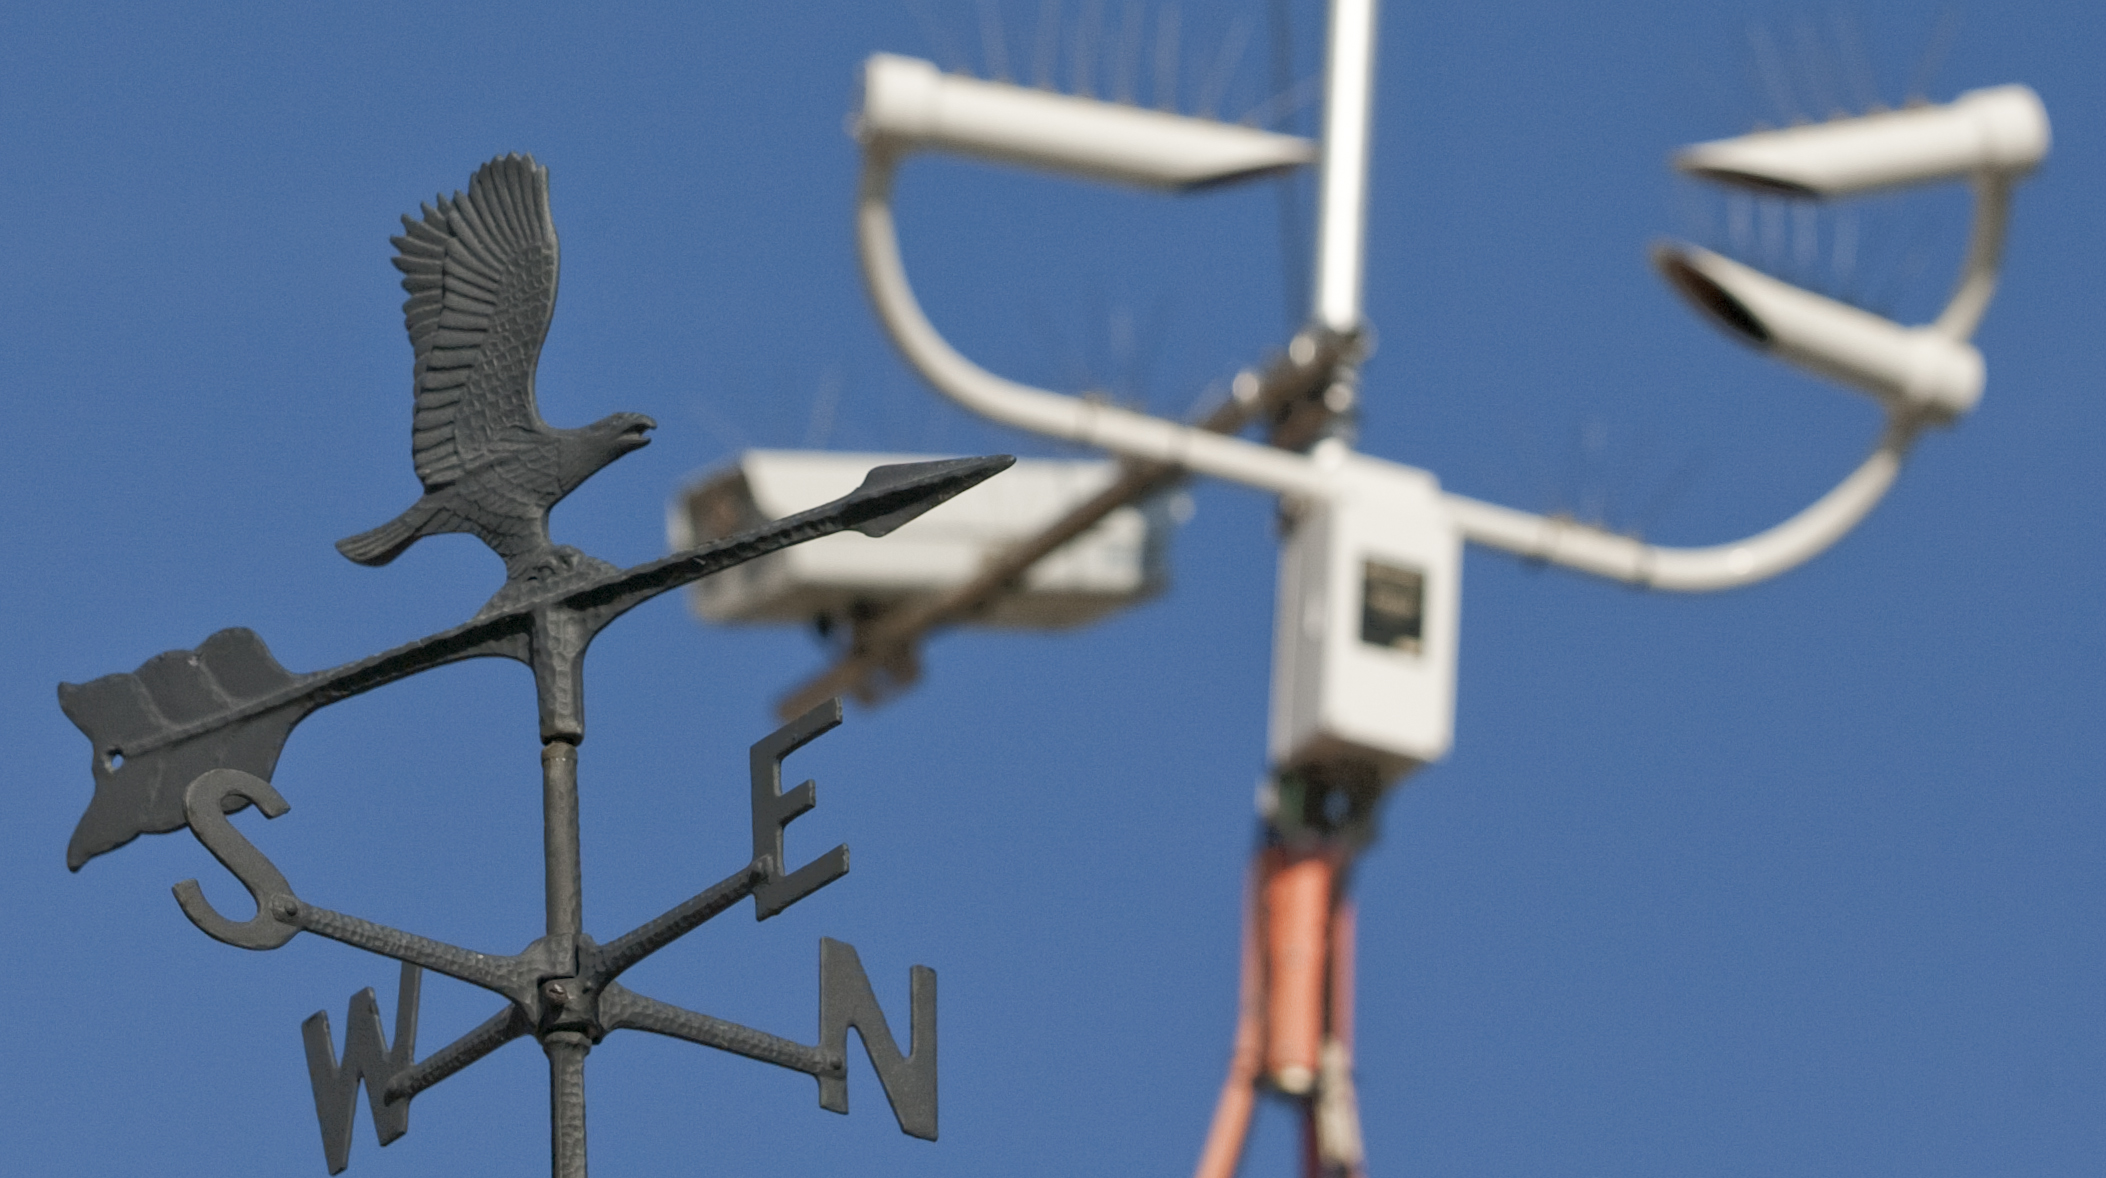 Weather station rededicated after six decades